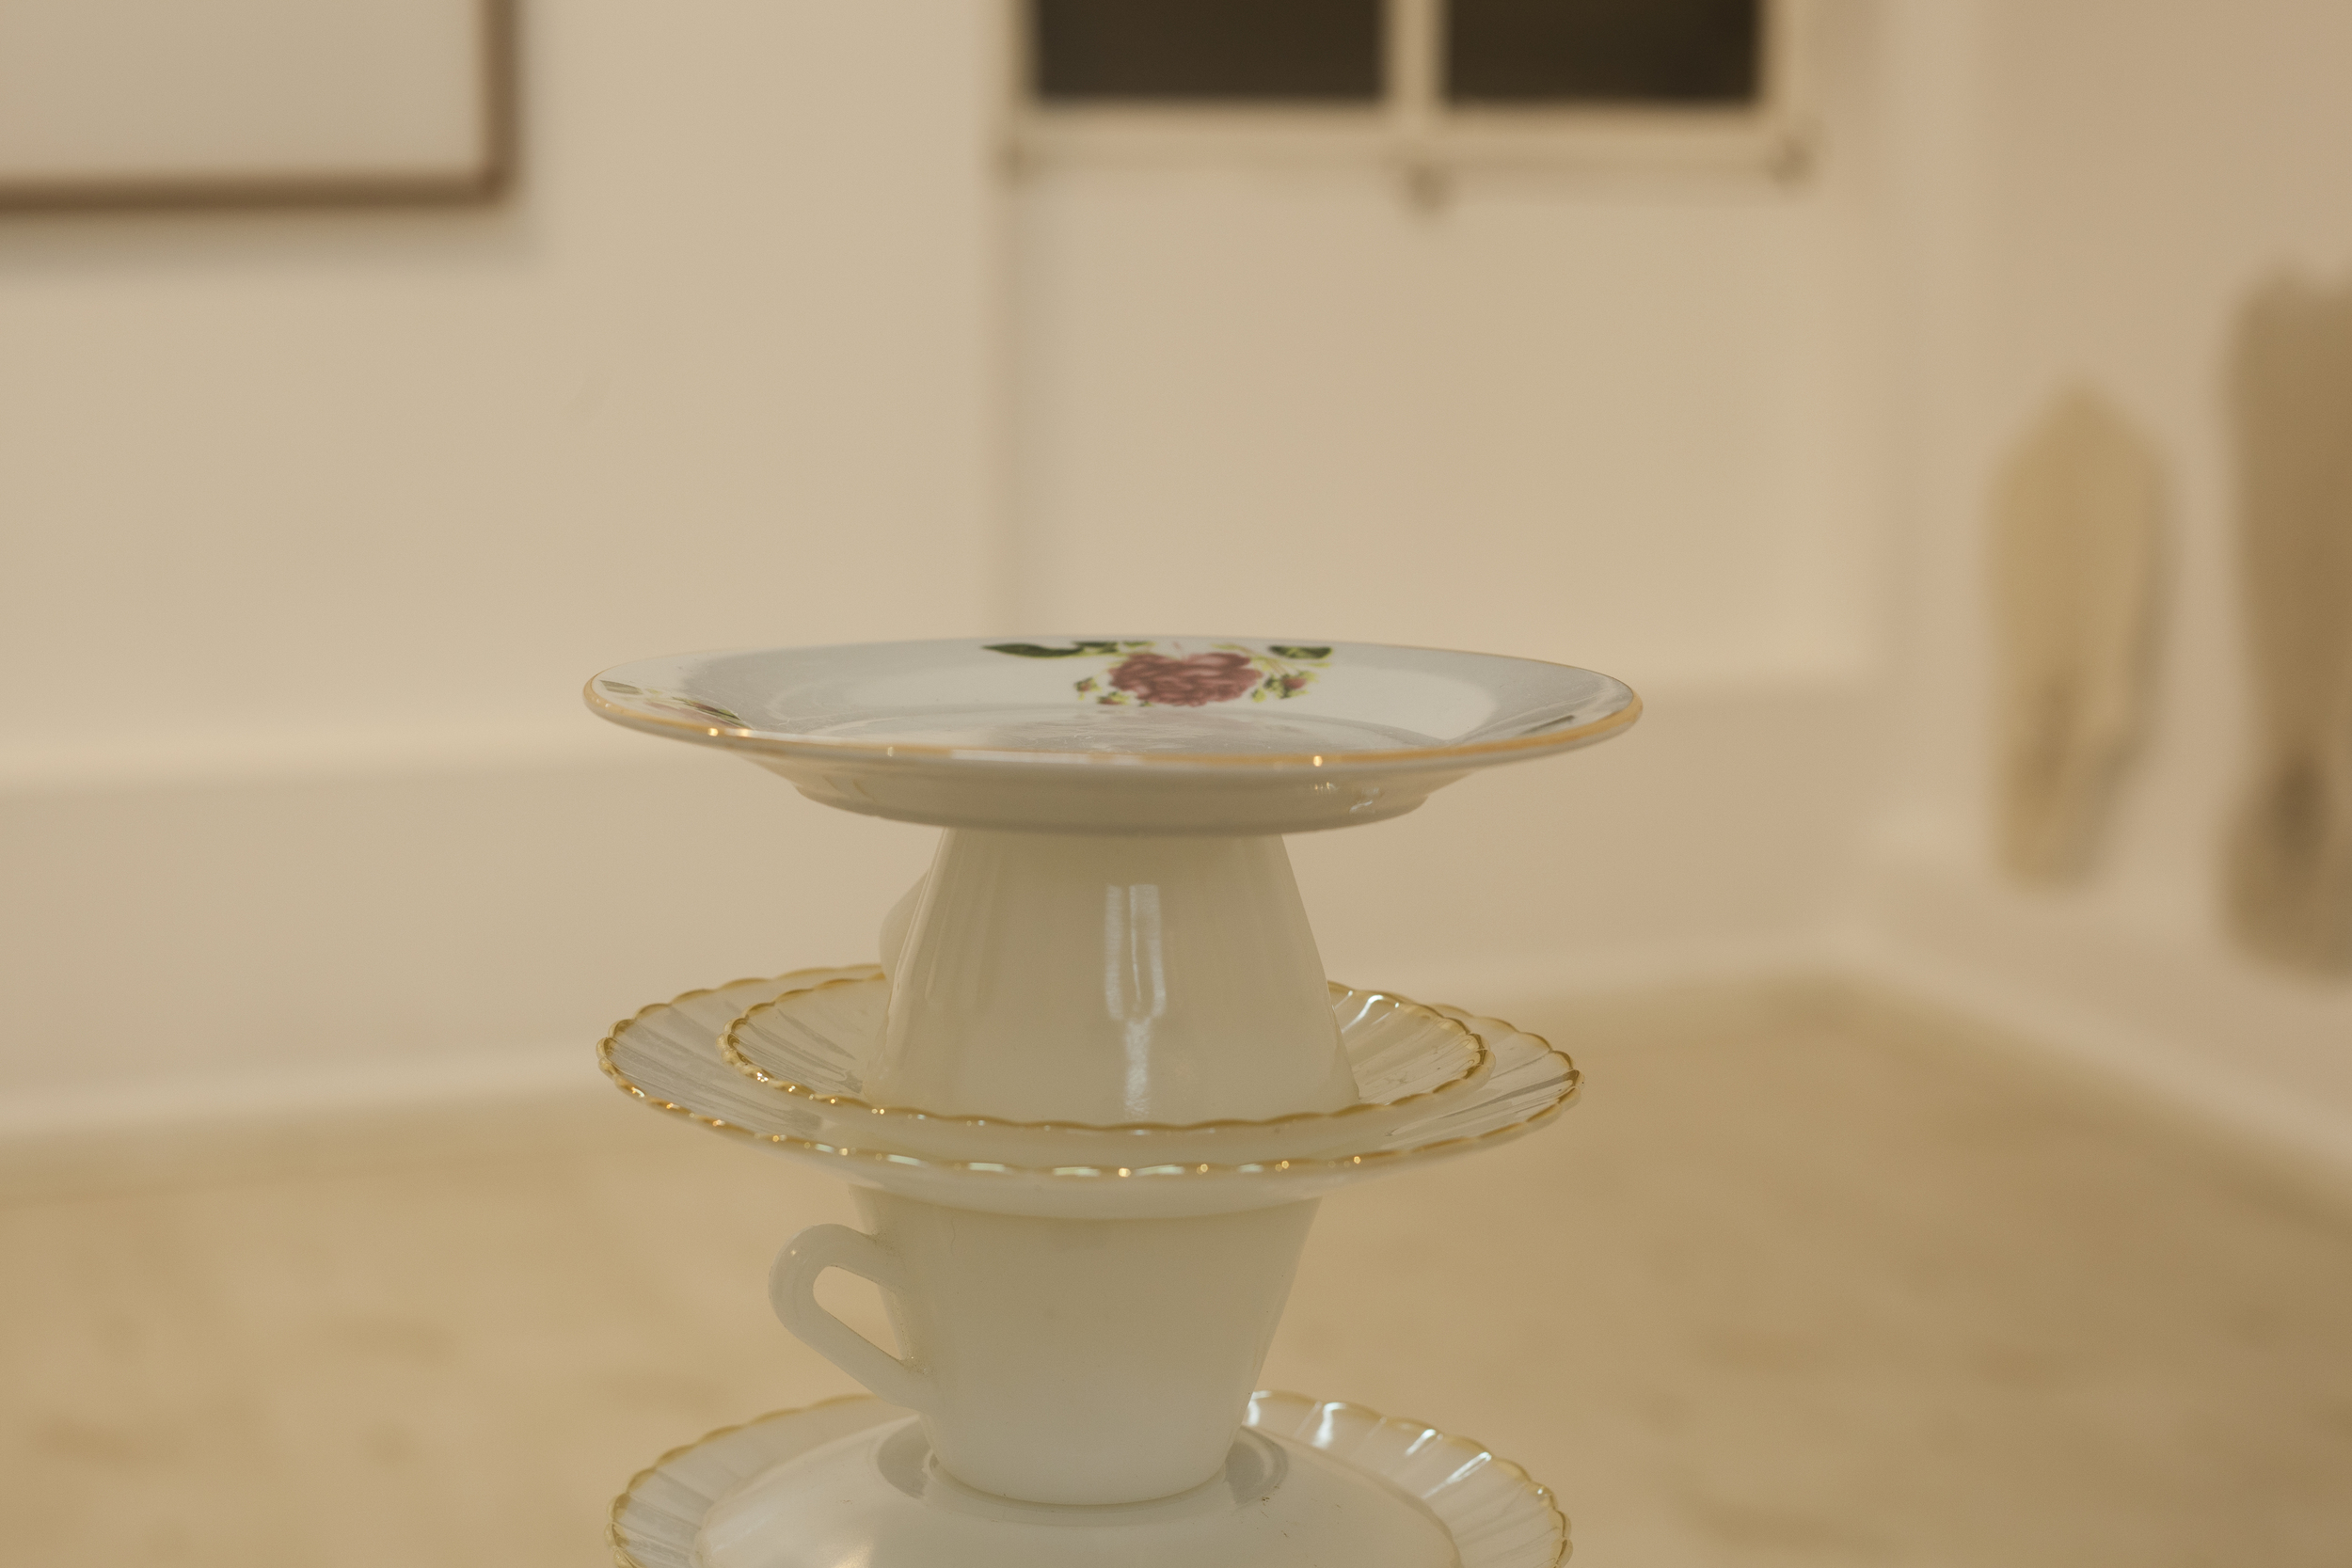 sub, detail, sub woofer, low frequency hertz, Industrial porcelain, 2014